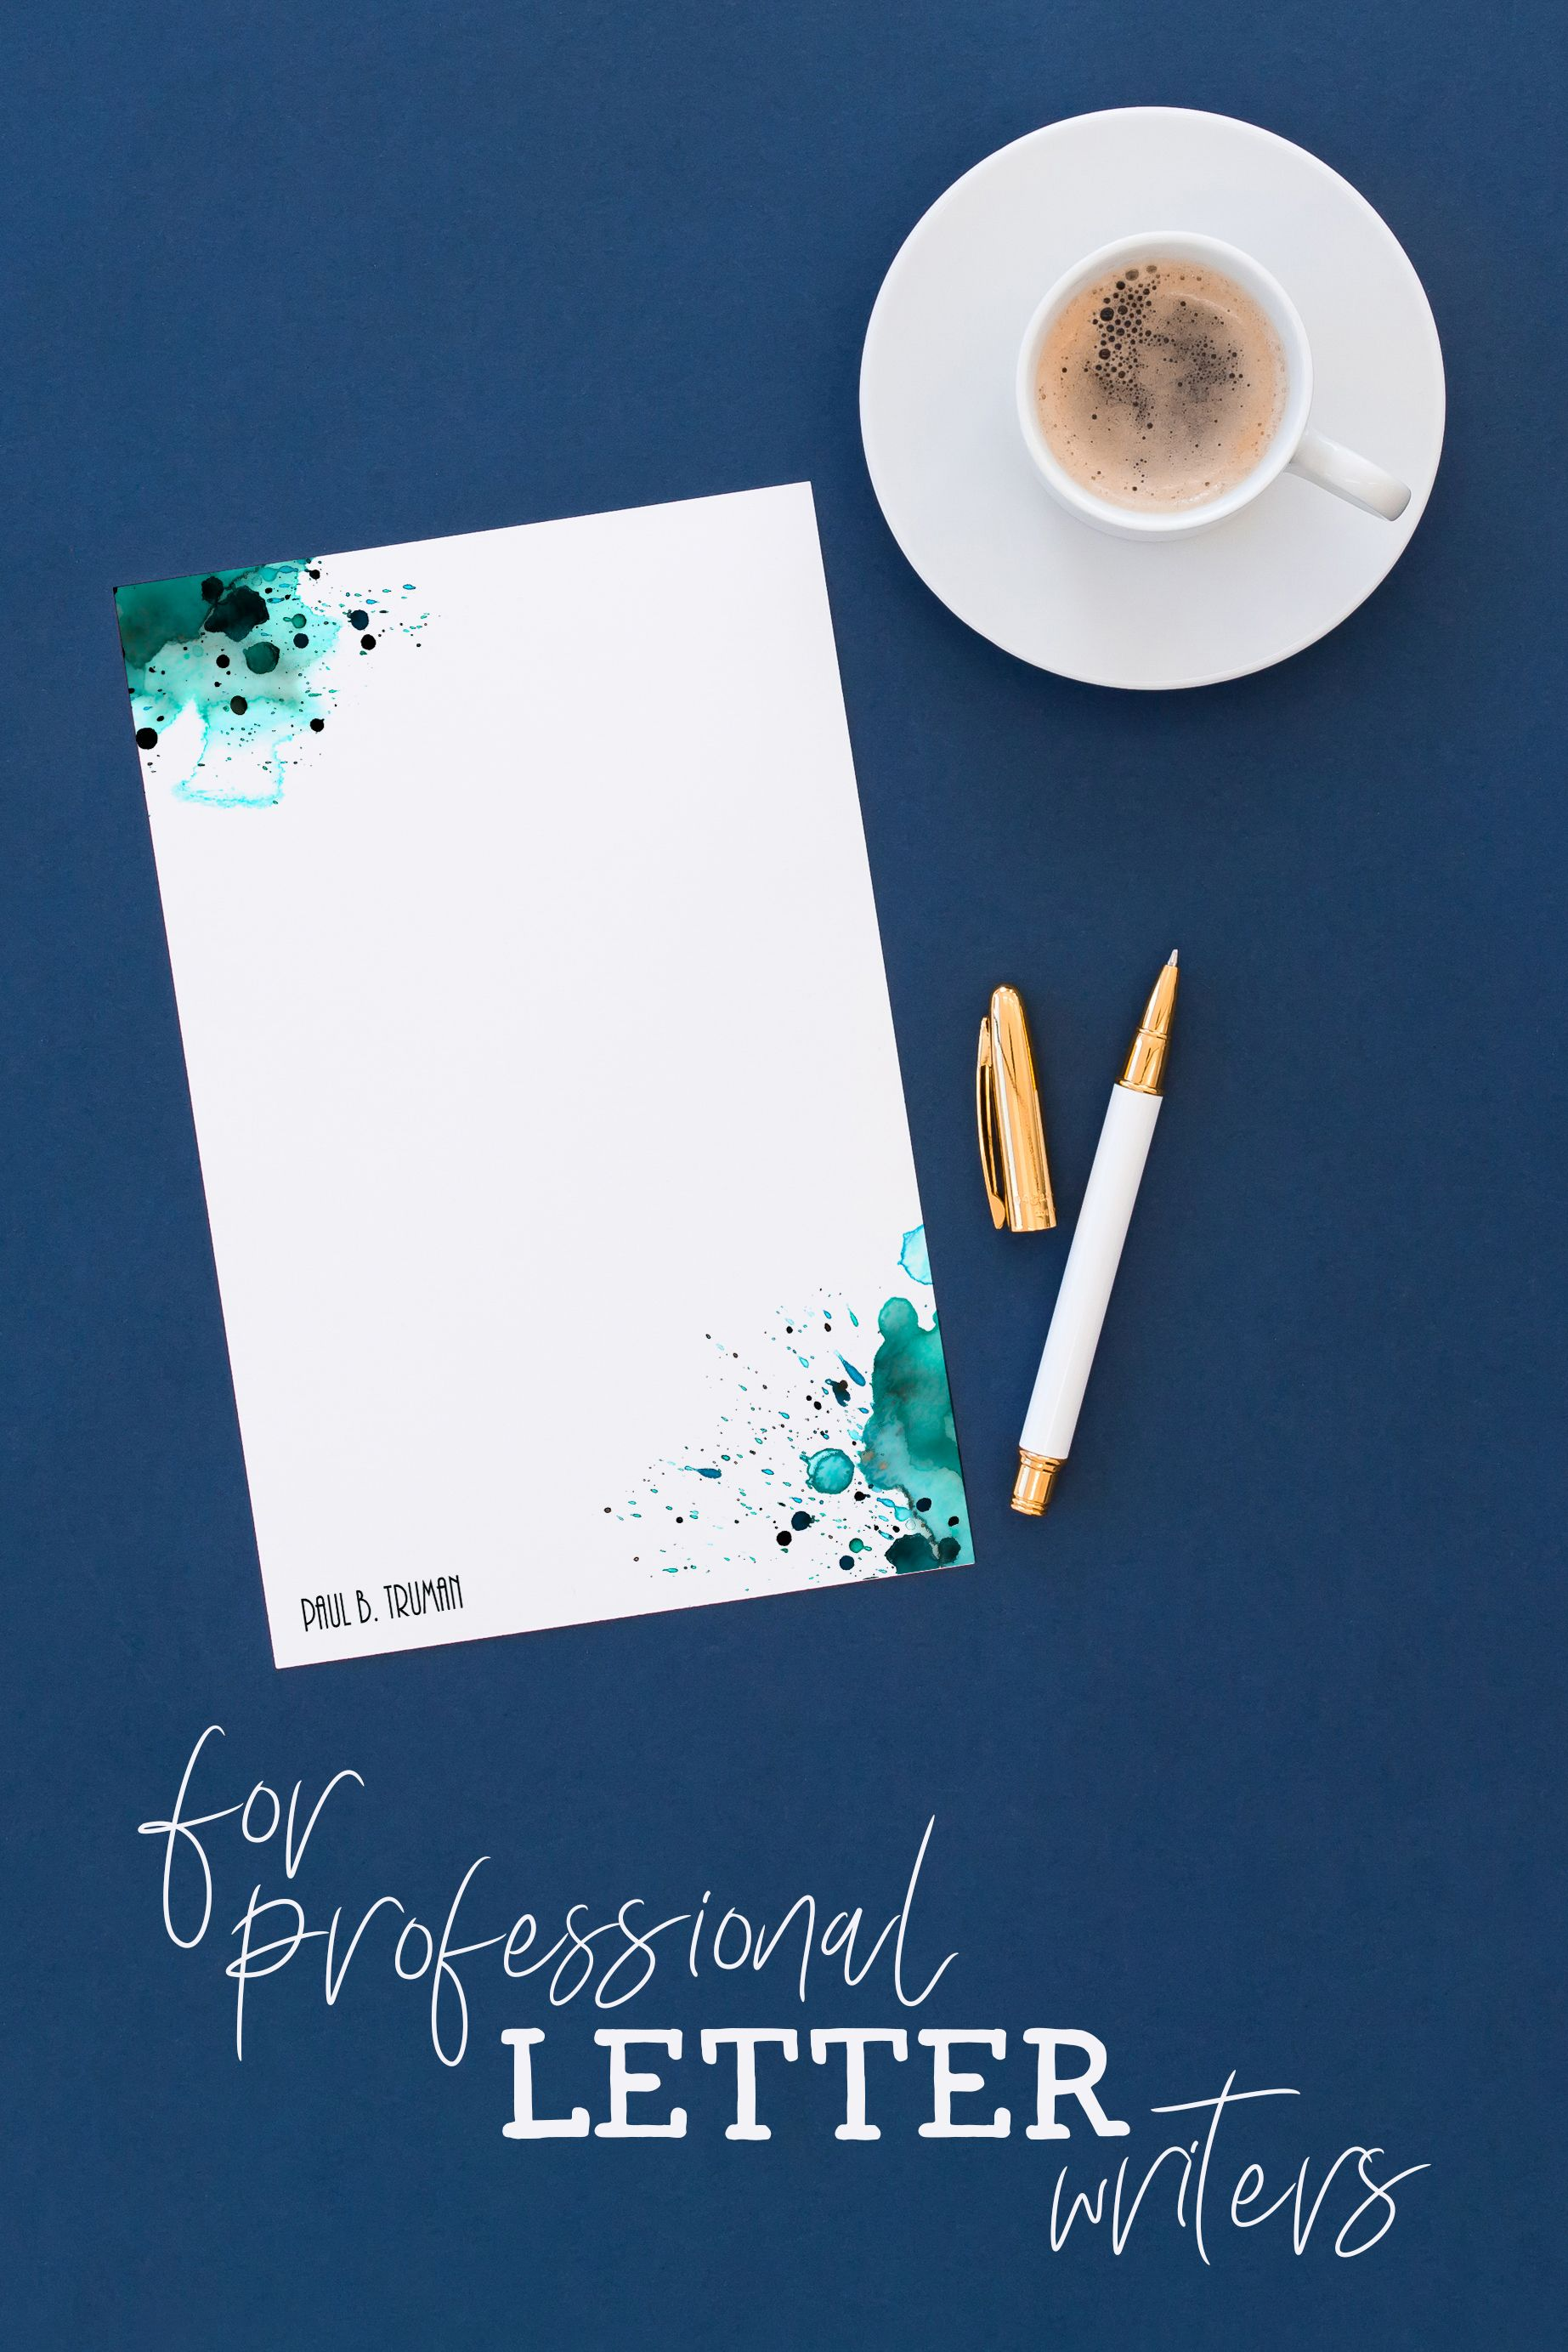 Watercolor Stationery Personalized Letter Writing Set Letter Stationary Set Stationary Paper Letter Set Letter Paper Letter Stationery Sets